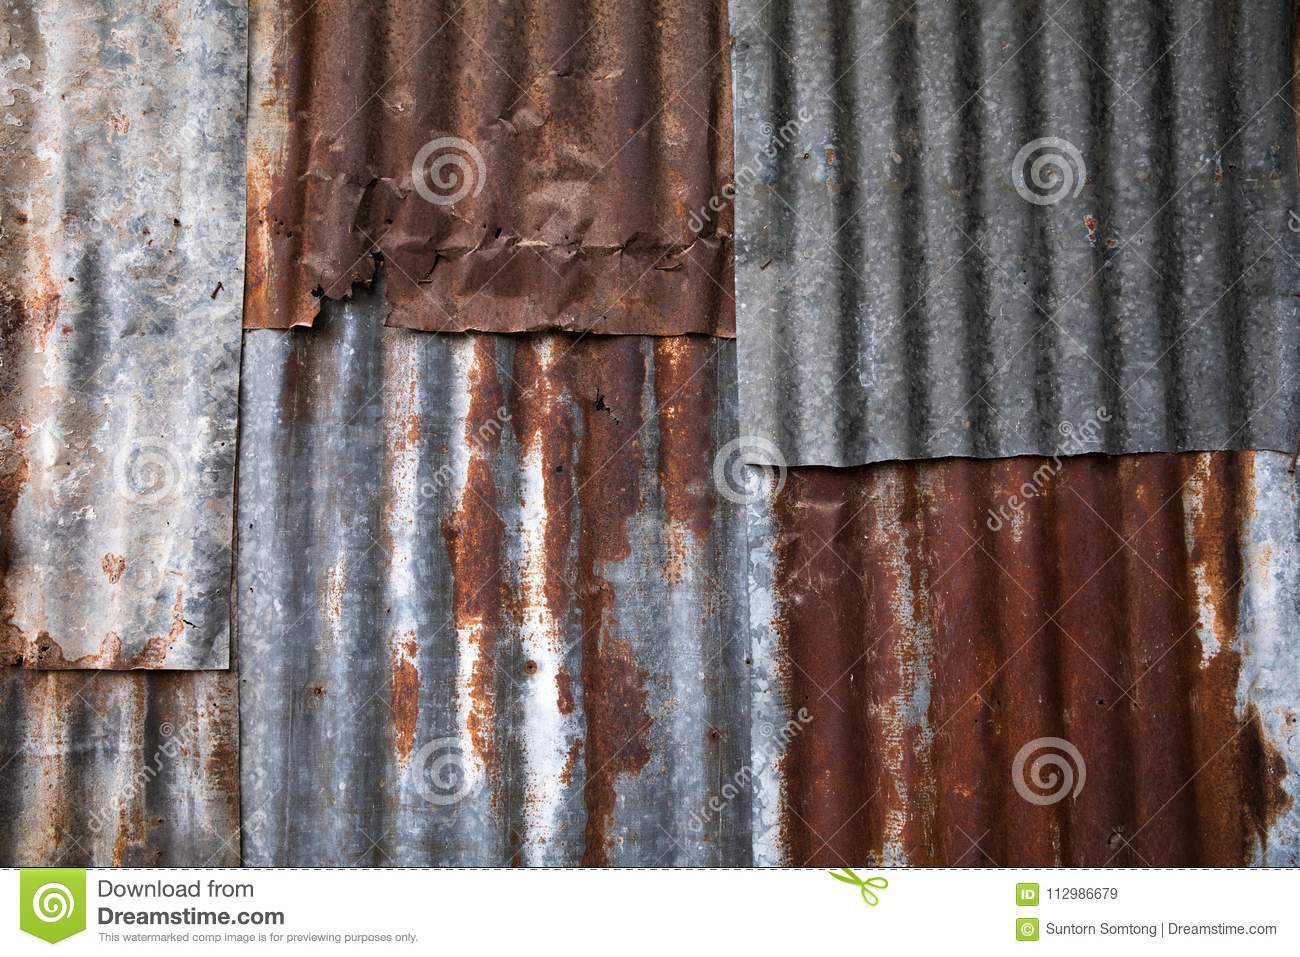 Galvanized steel sheet, rusted surface background.